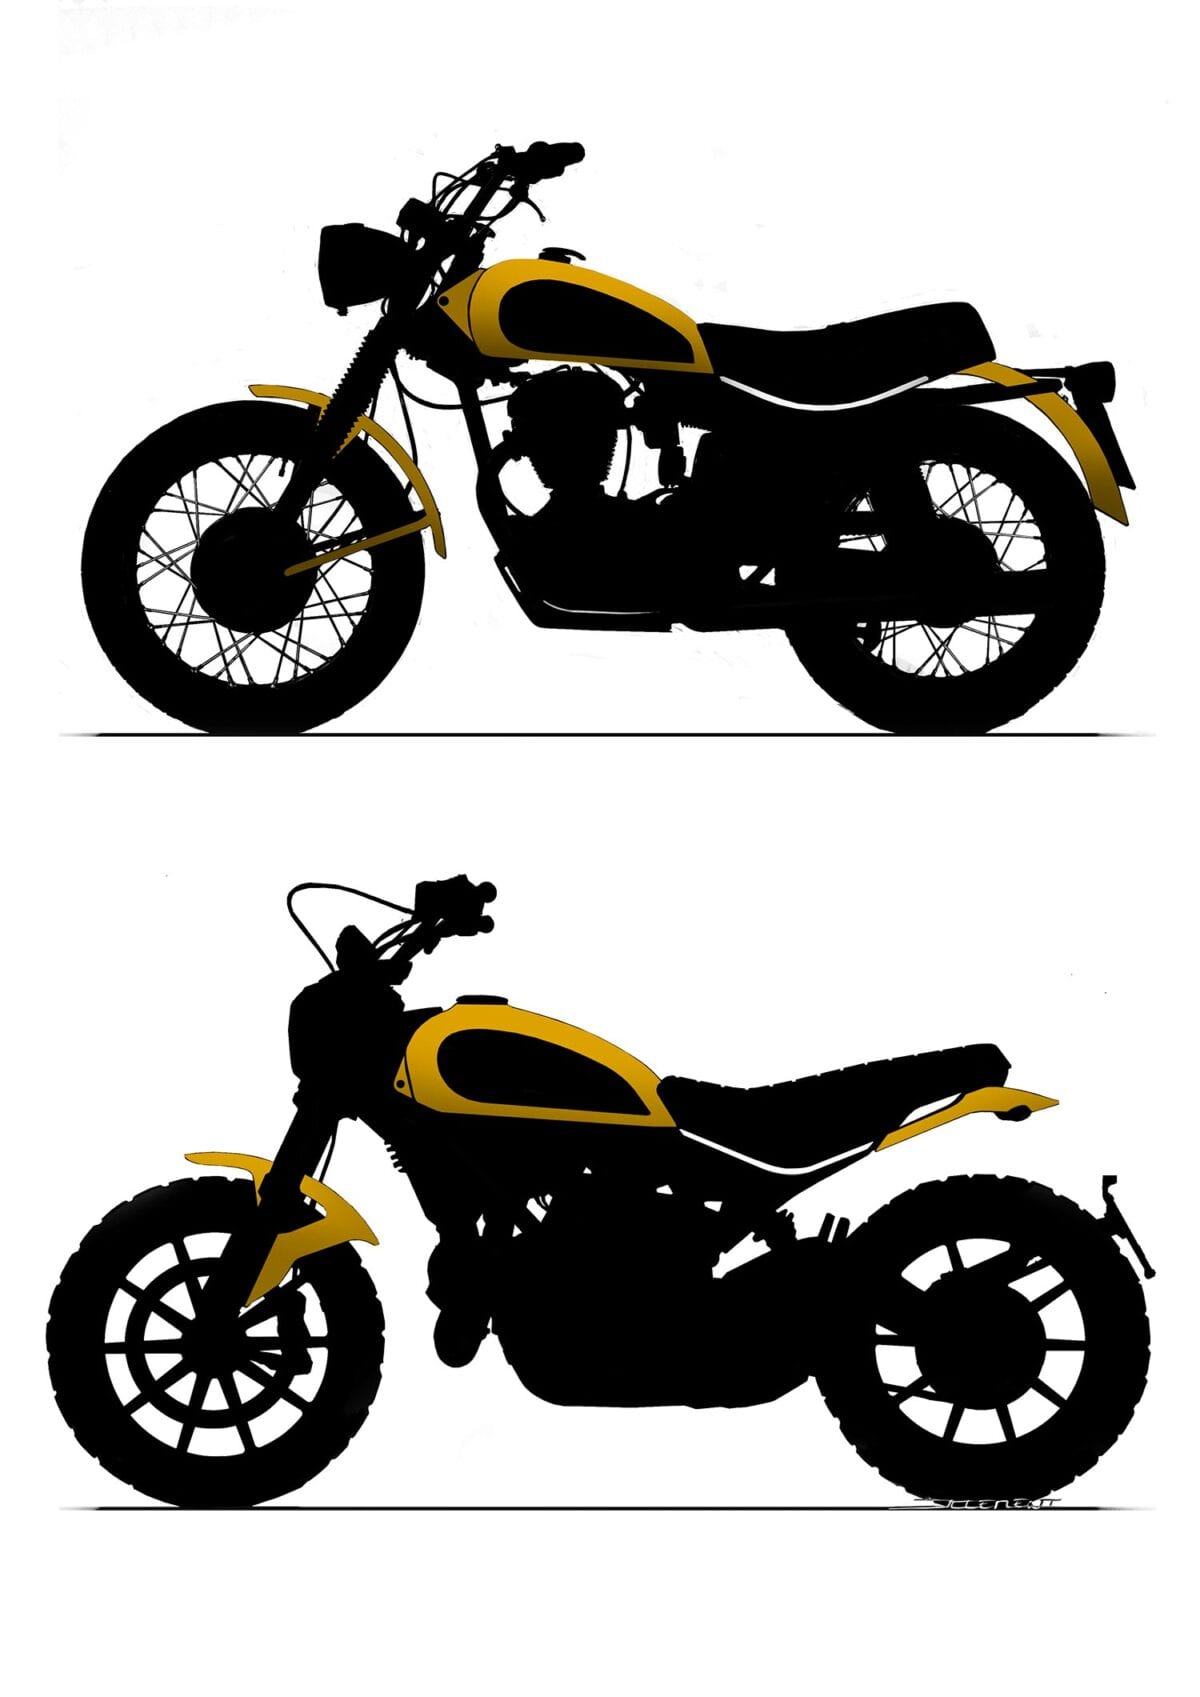 SCRAMBLER-SKETCH-ICONIC-ELEMENTS